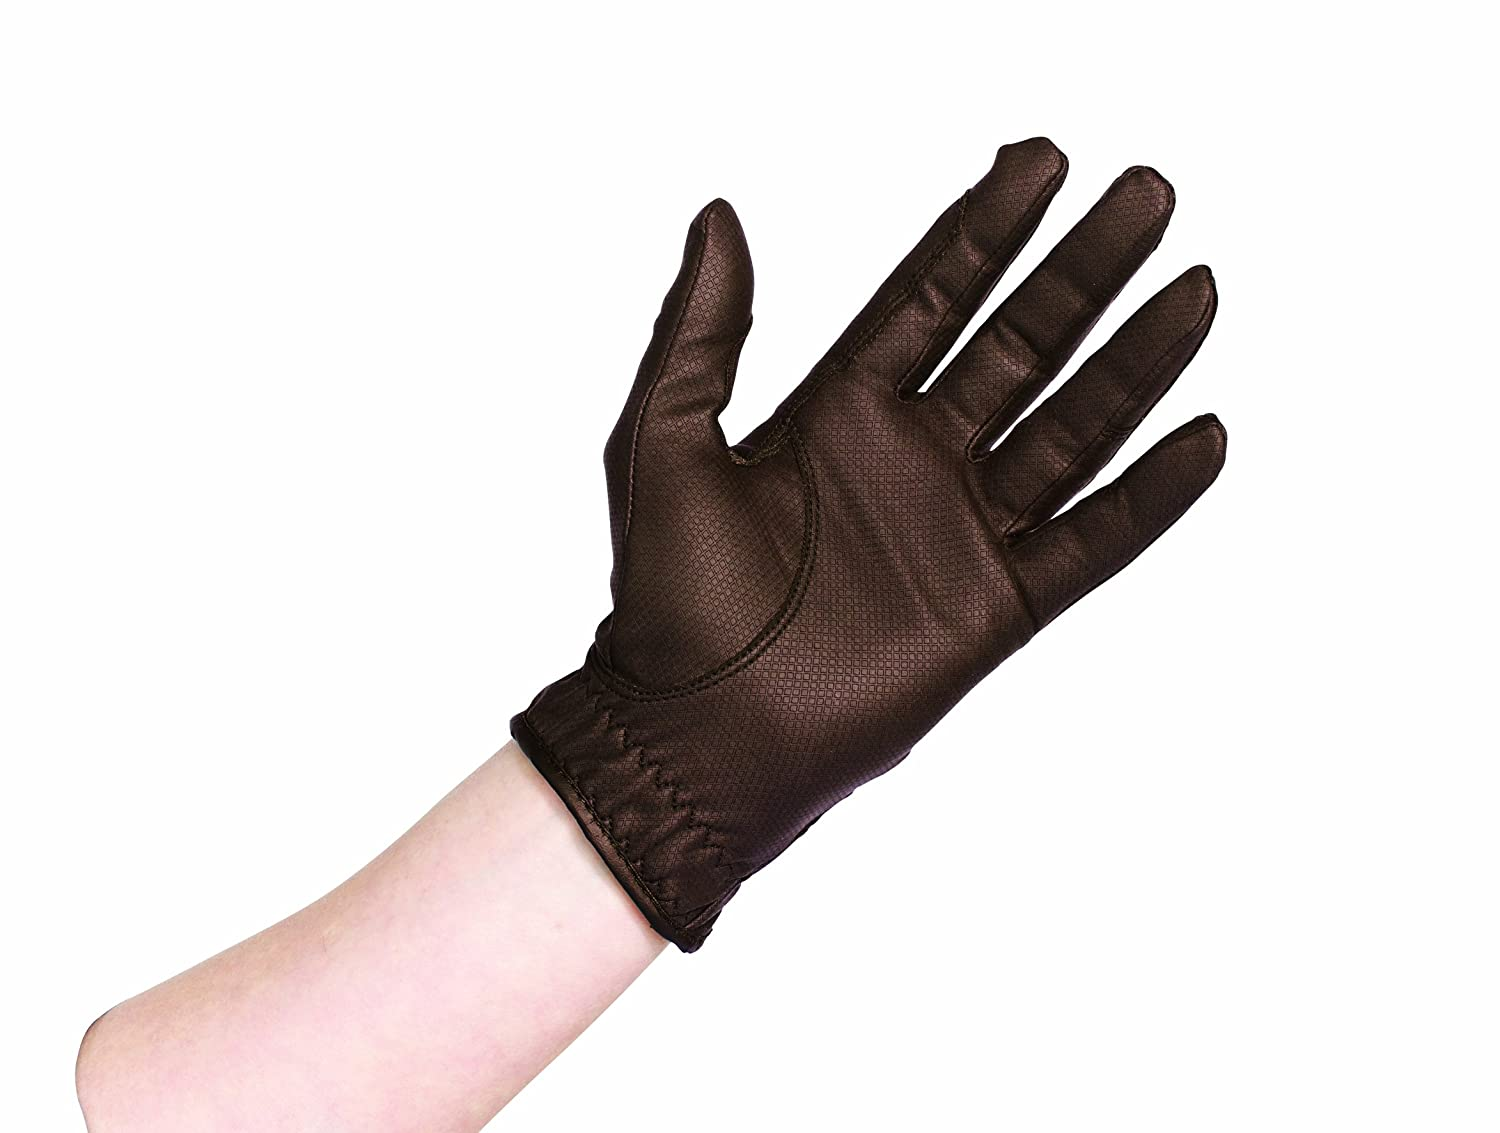 Caldene Competition Riding Glove - Brown, X-Large adidas brown ibjjf competition rashguard s br